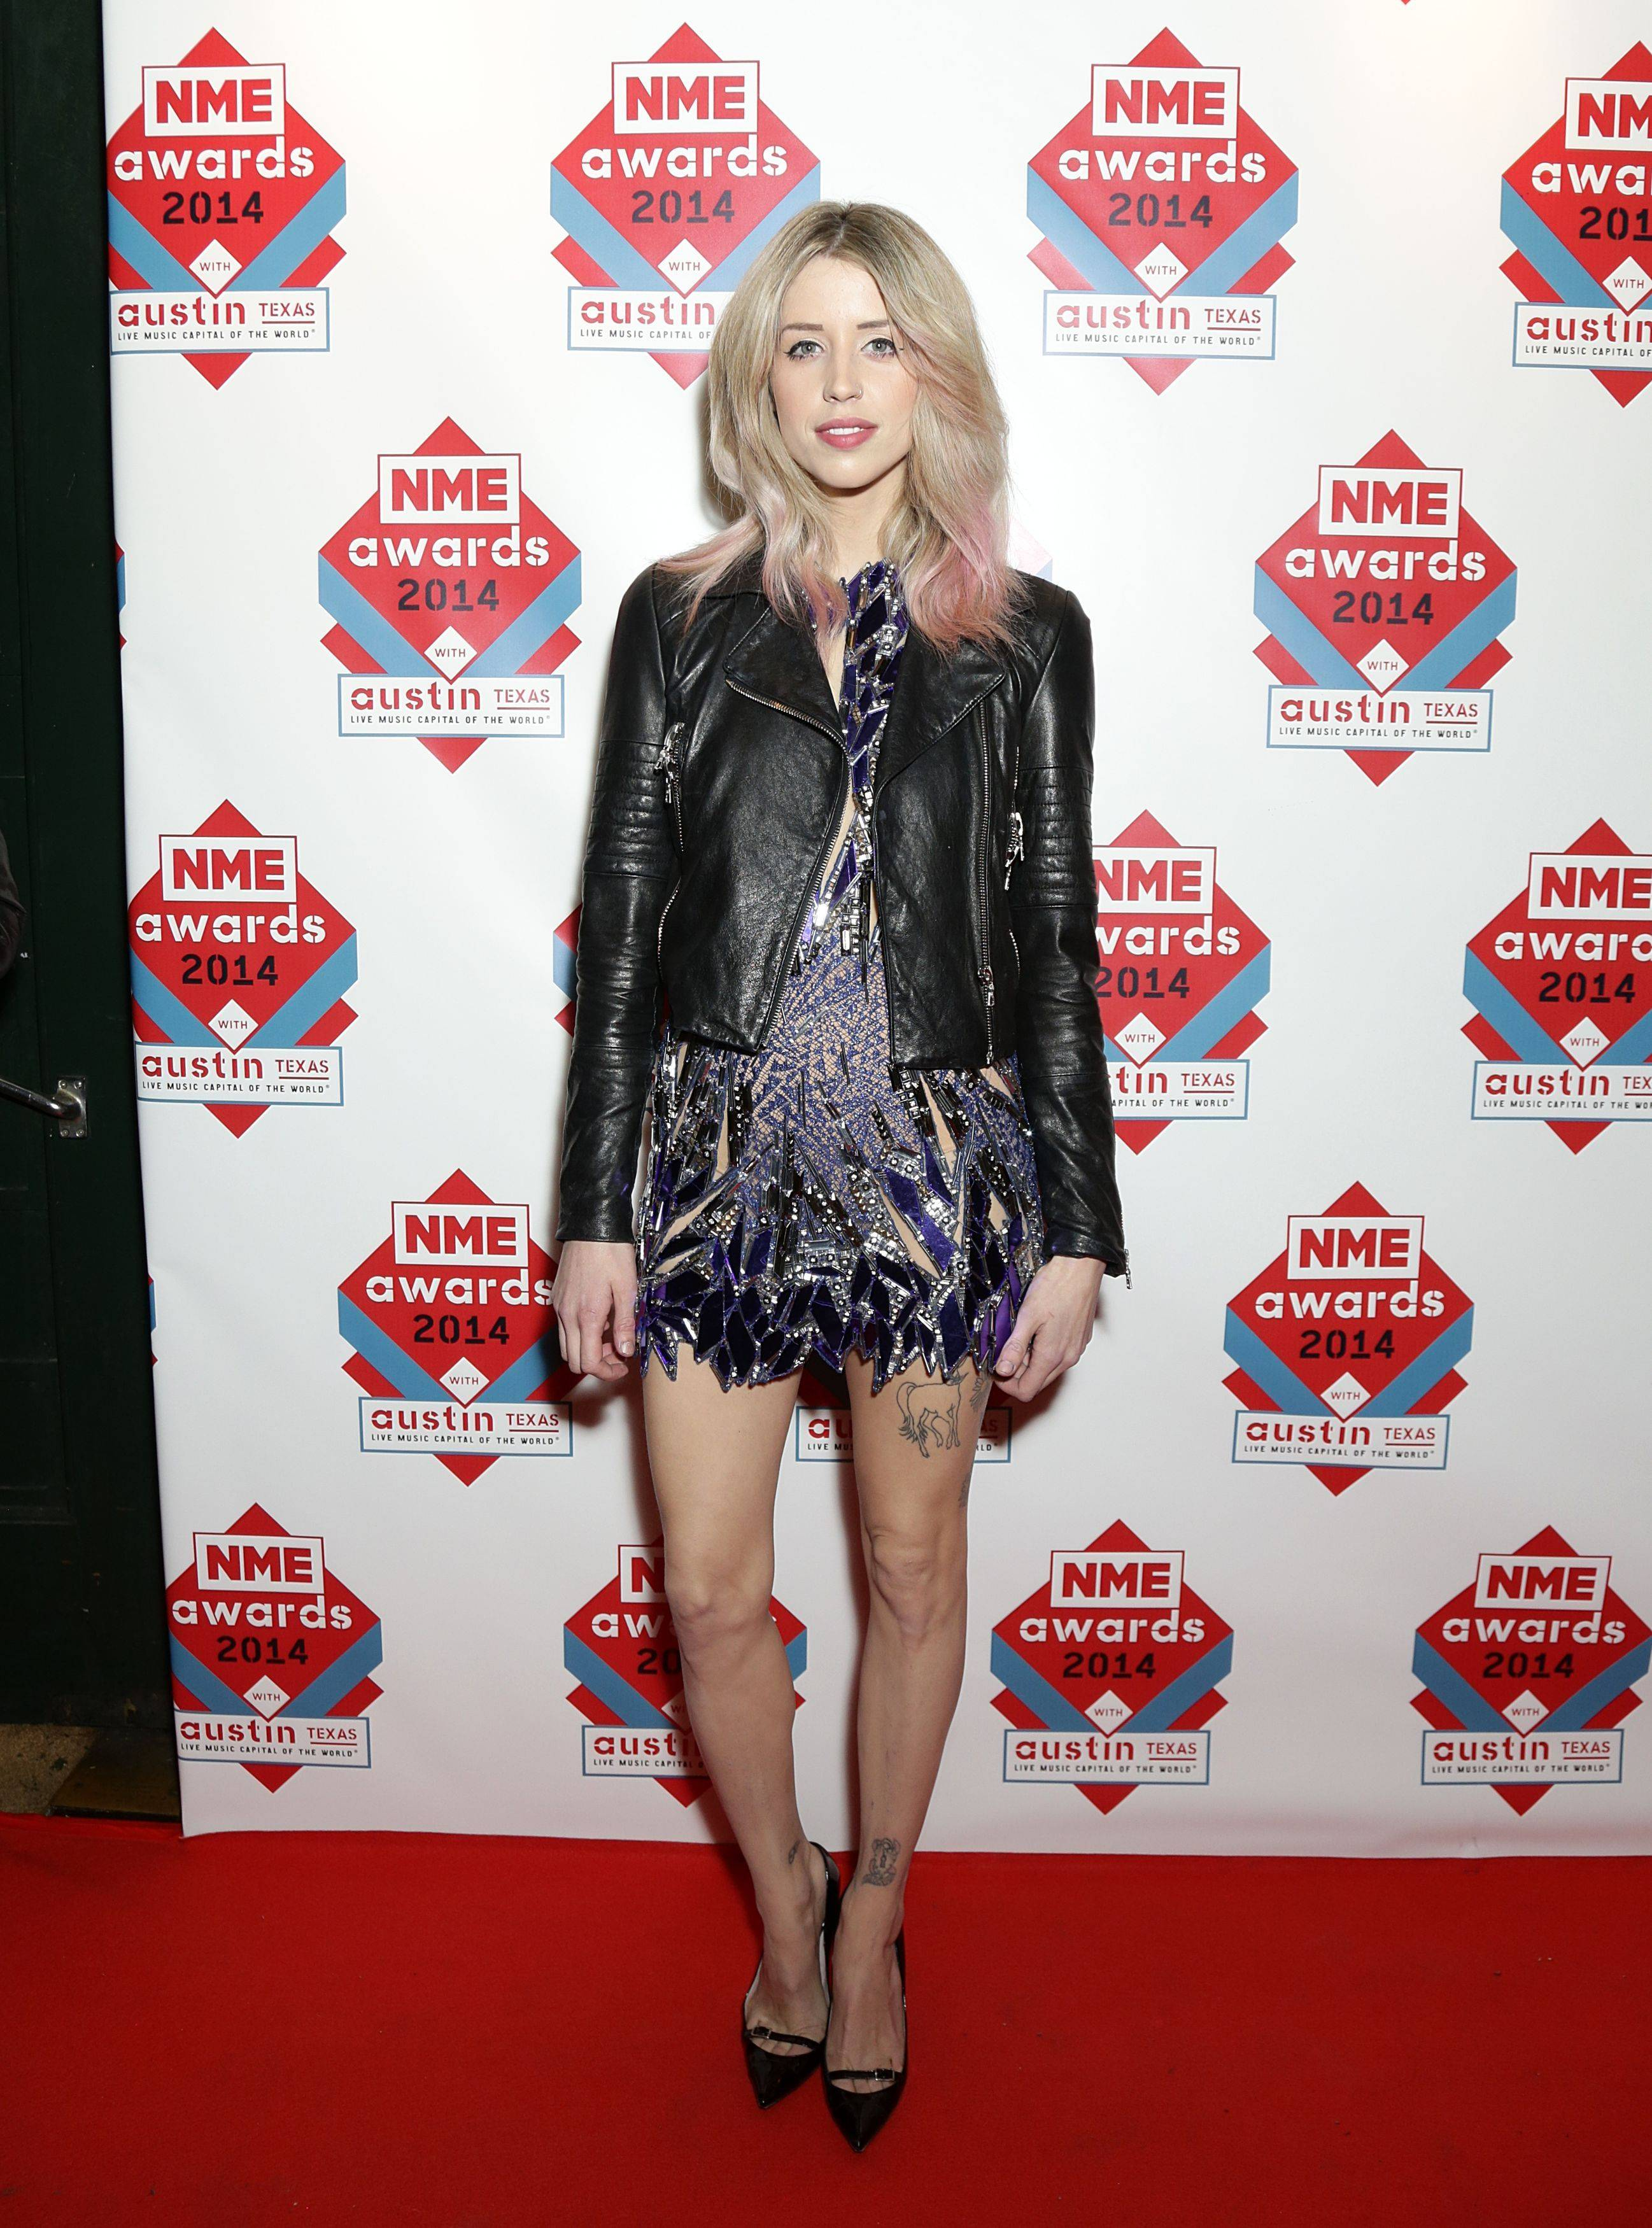 Police say an autopsy on Peaches Geldof was inconclusive. She was found dead at her home in England Monday.